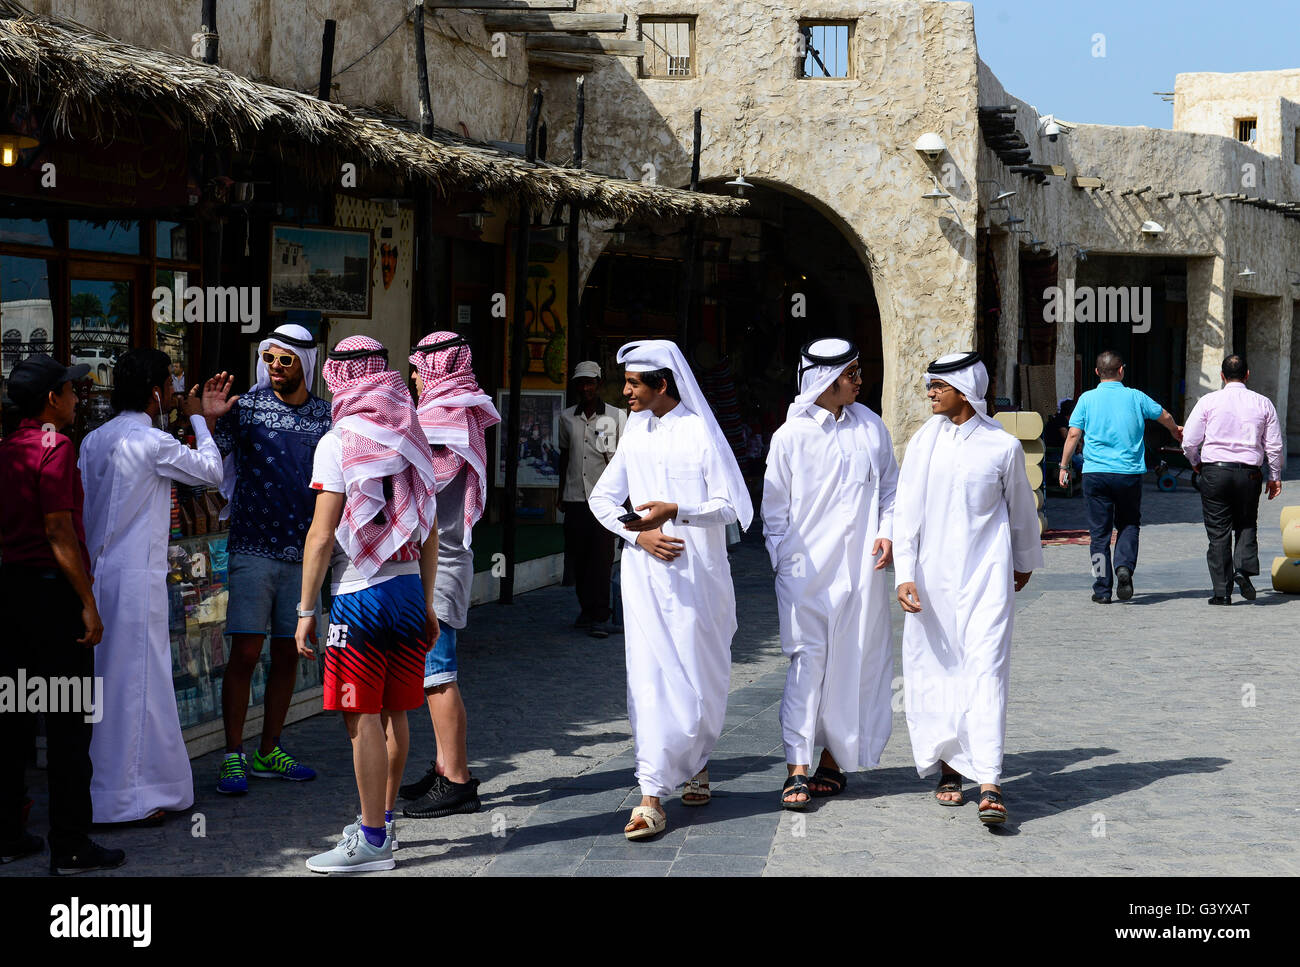 QATAR, Doha, Bazar Souq Waqif , western tourist with arab headgear souvenir and qatari men in traditional white Stock Photo